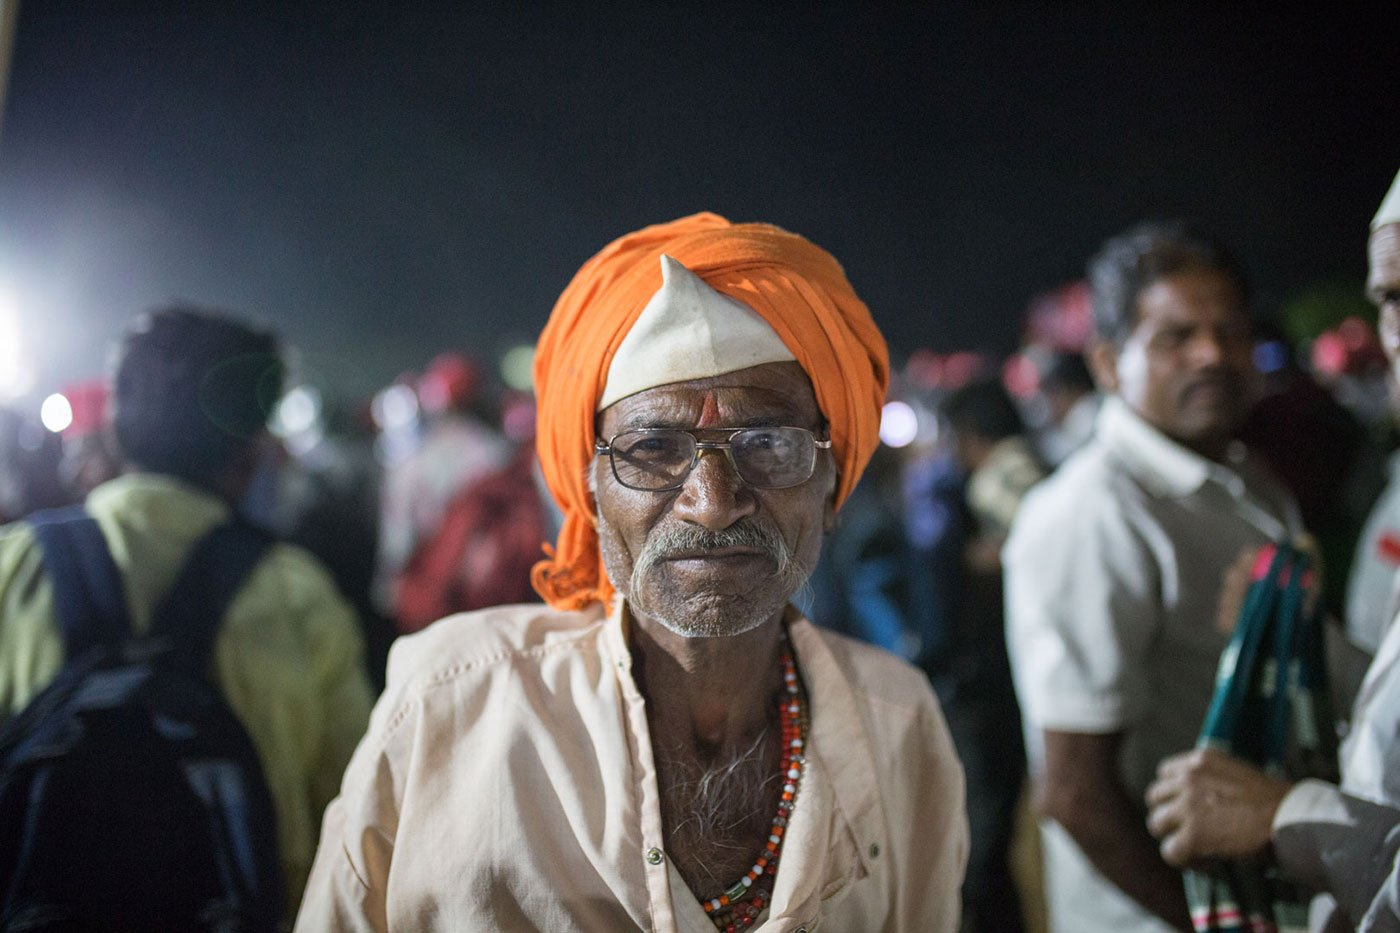 'We have to fight for our rights', asserts 65-year-old Shankar Waghere. Credit: Parth M.N./People's Archive of Rural India